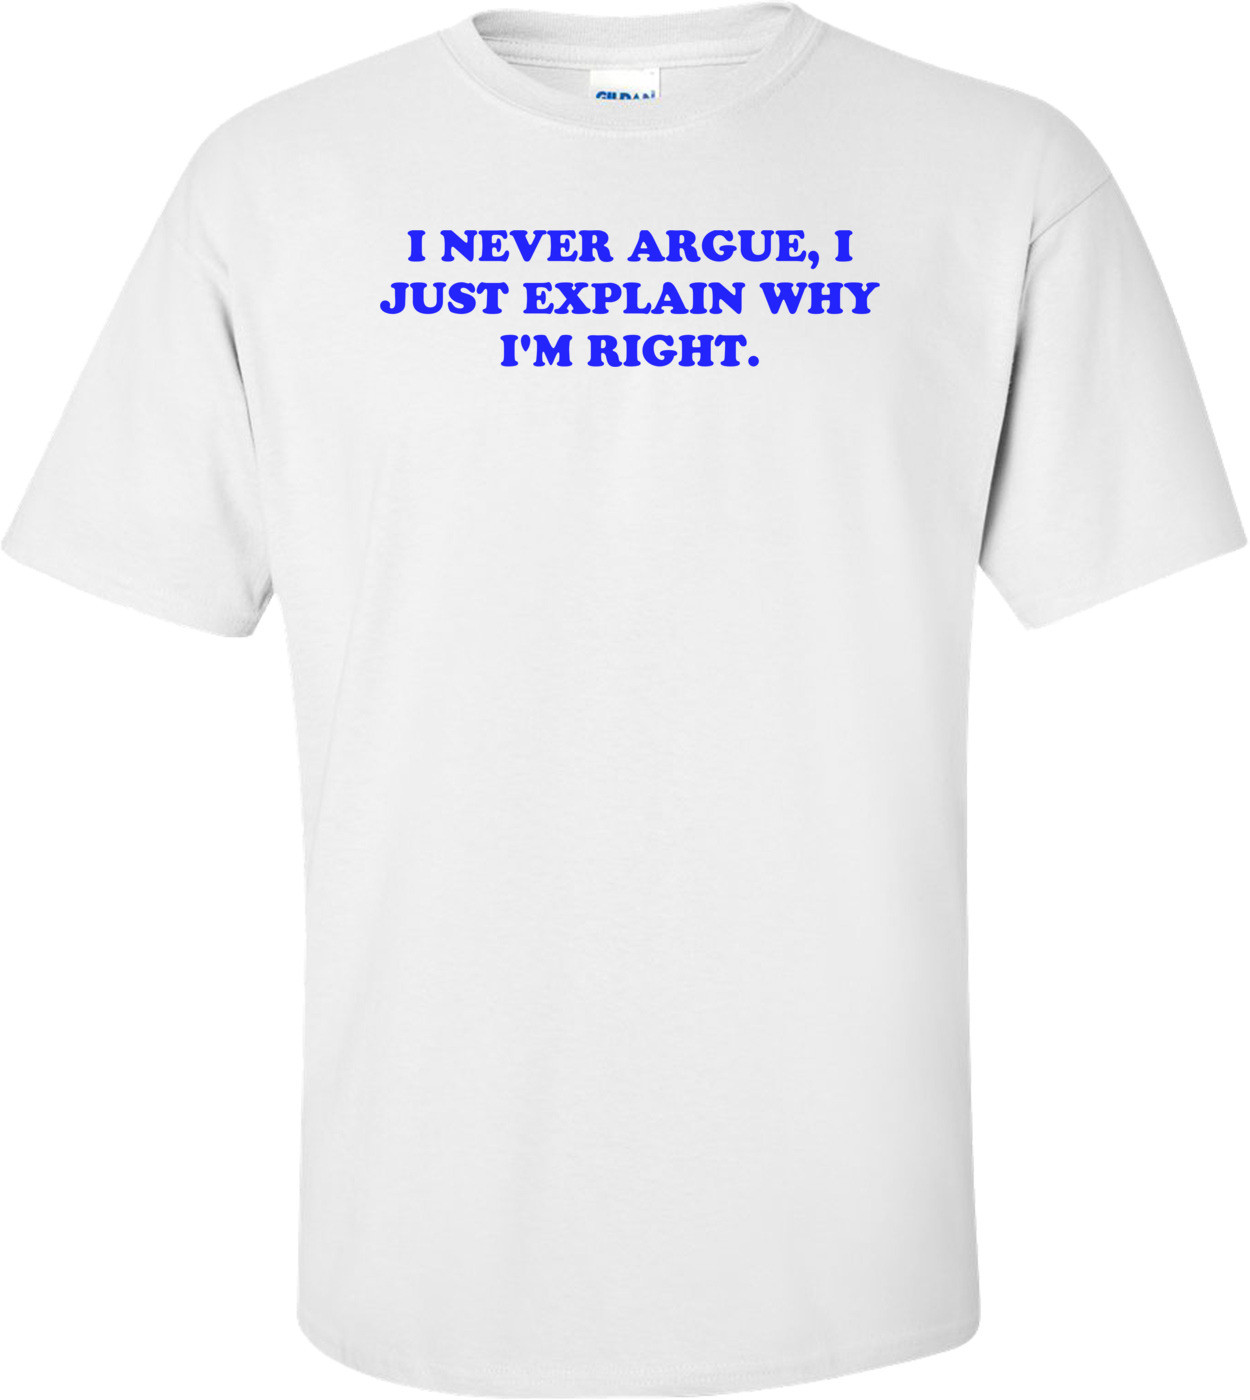 I NEVER ARGUE, I JUST EXPLAIN WHY I'M RIGHT. Shirt